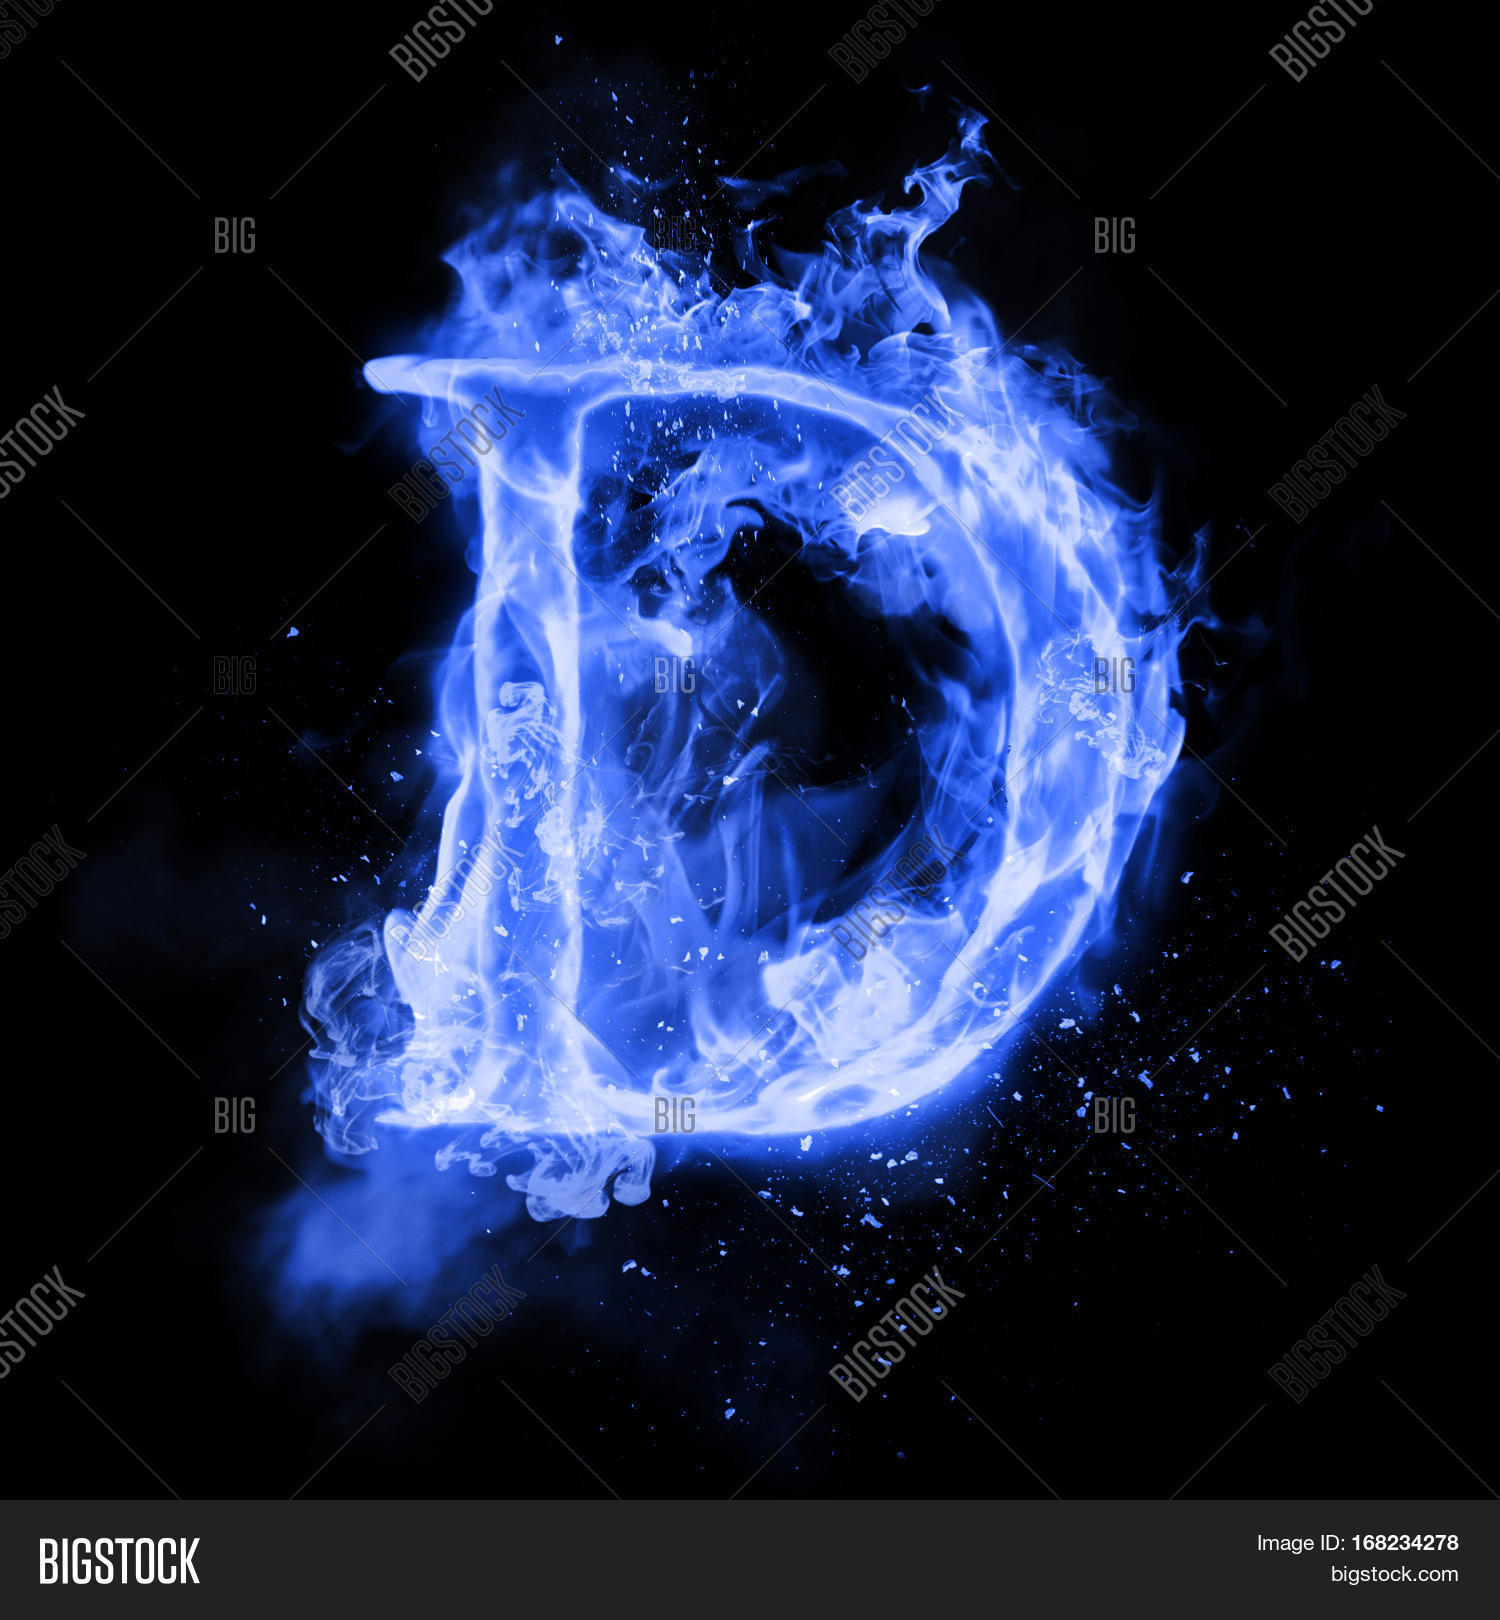 Letter D In Fire | www.pixshark.com - Images Galleries ...